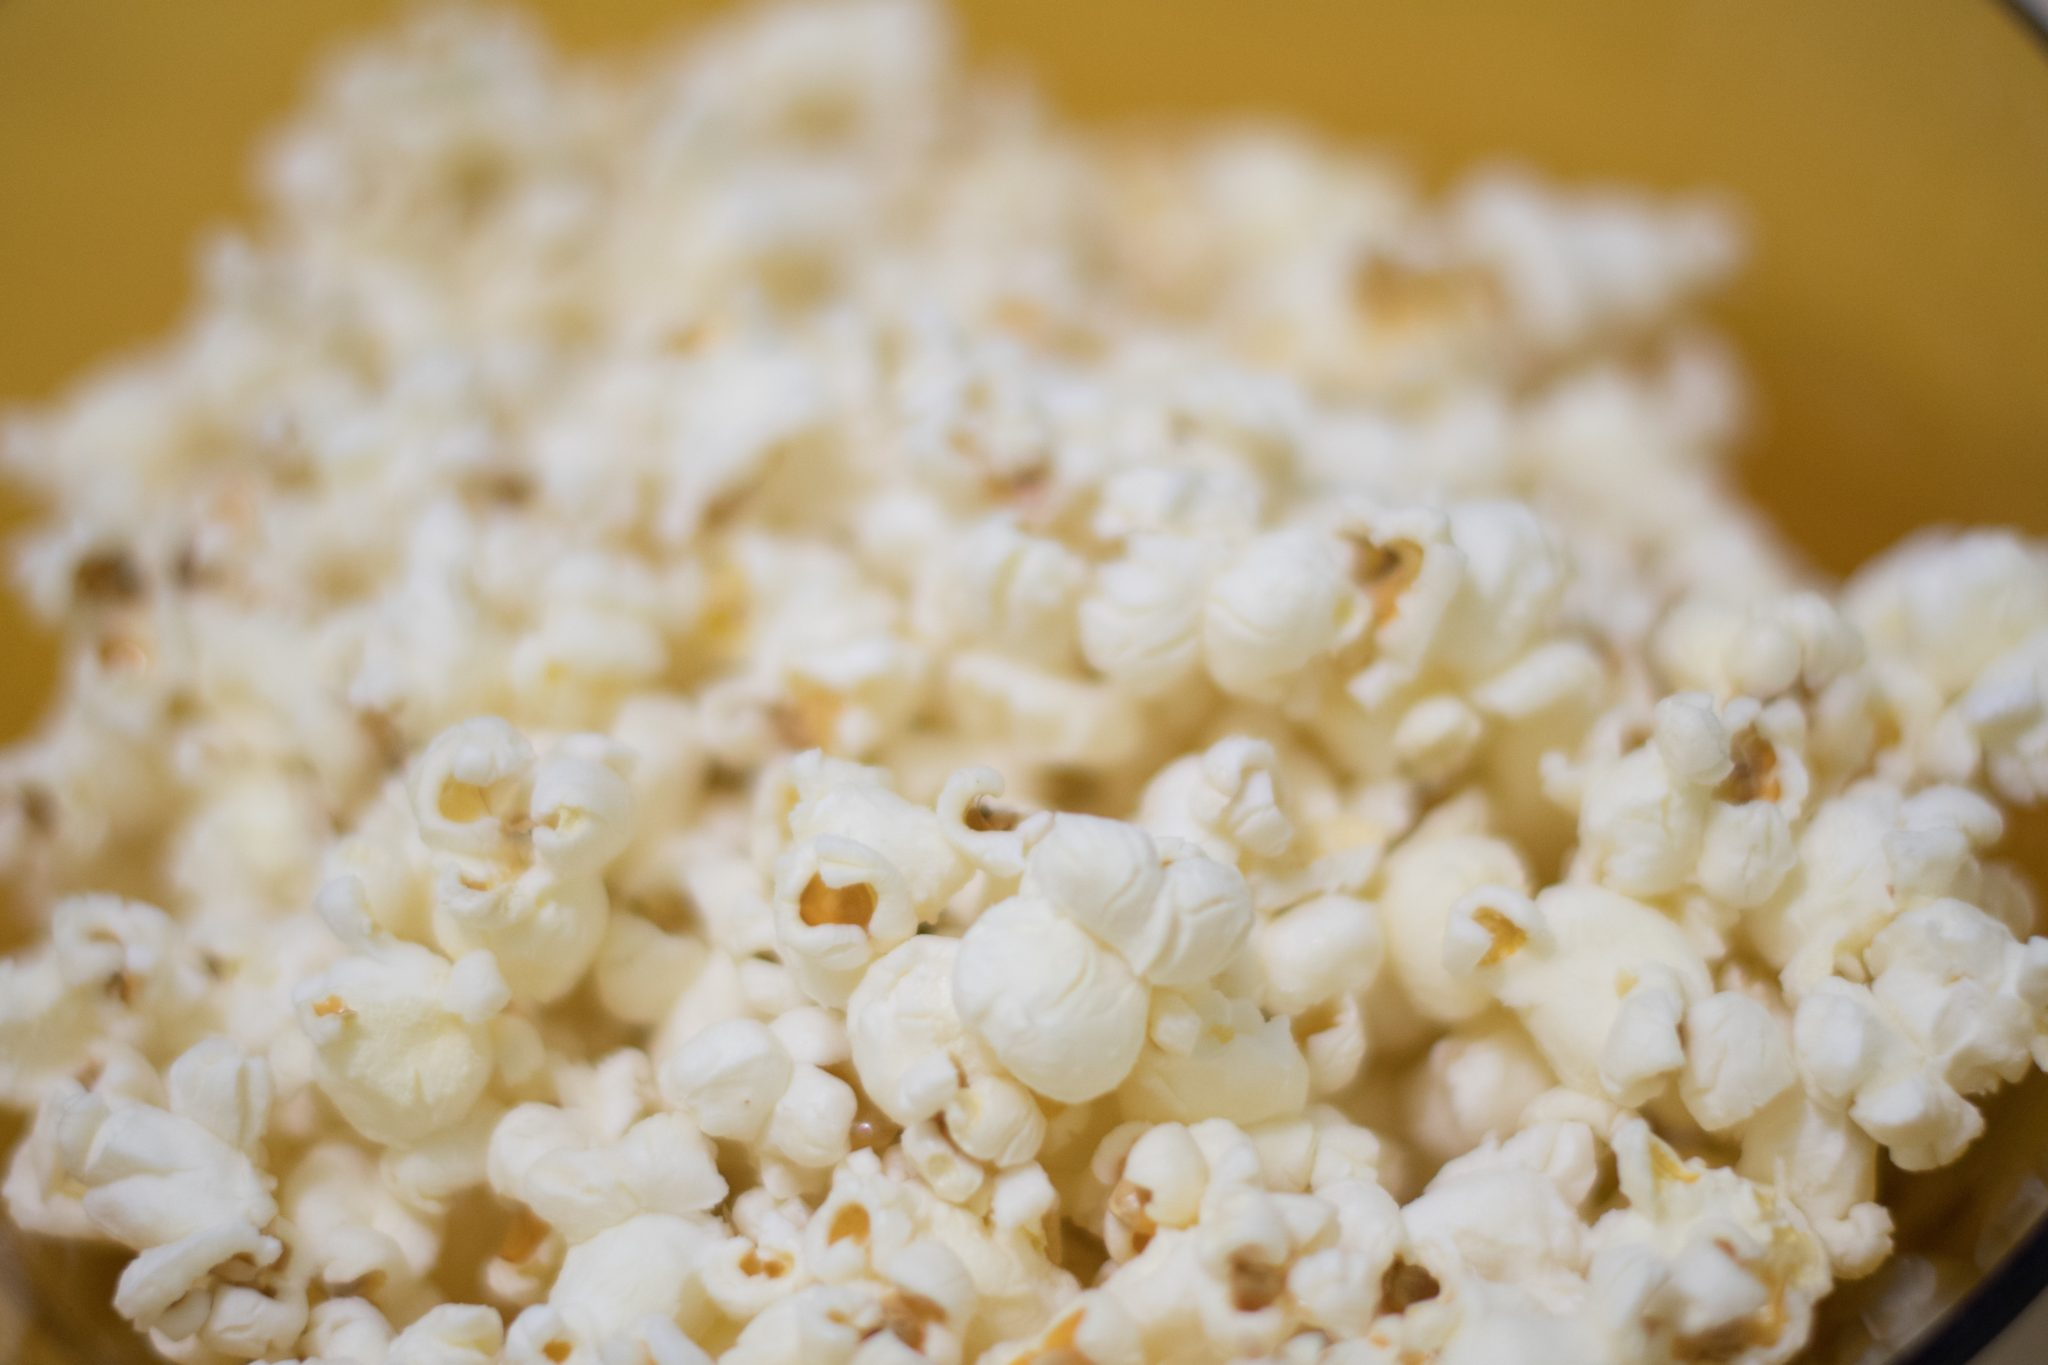 Microwave Popcorn Safety Concerns - Family Health